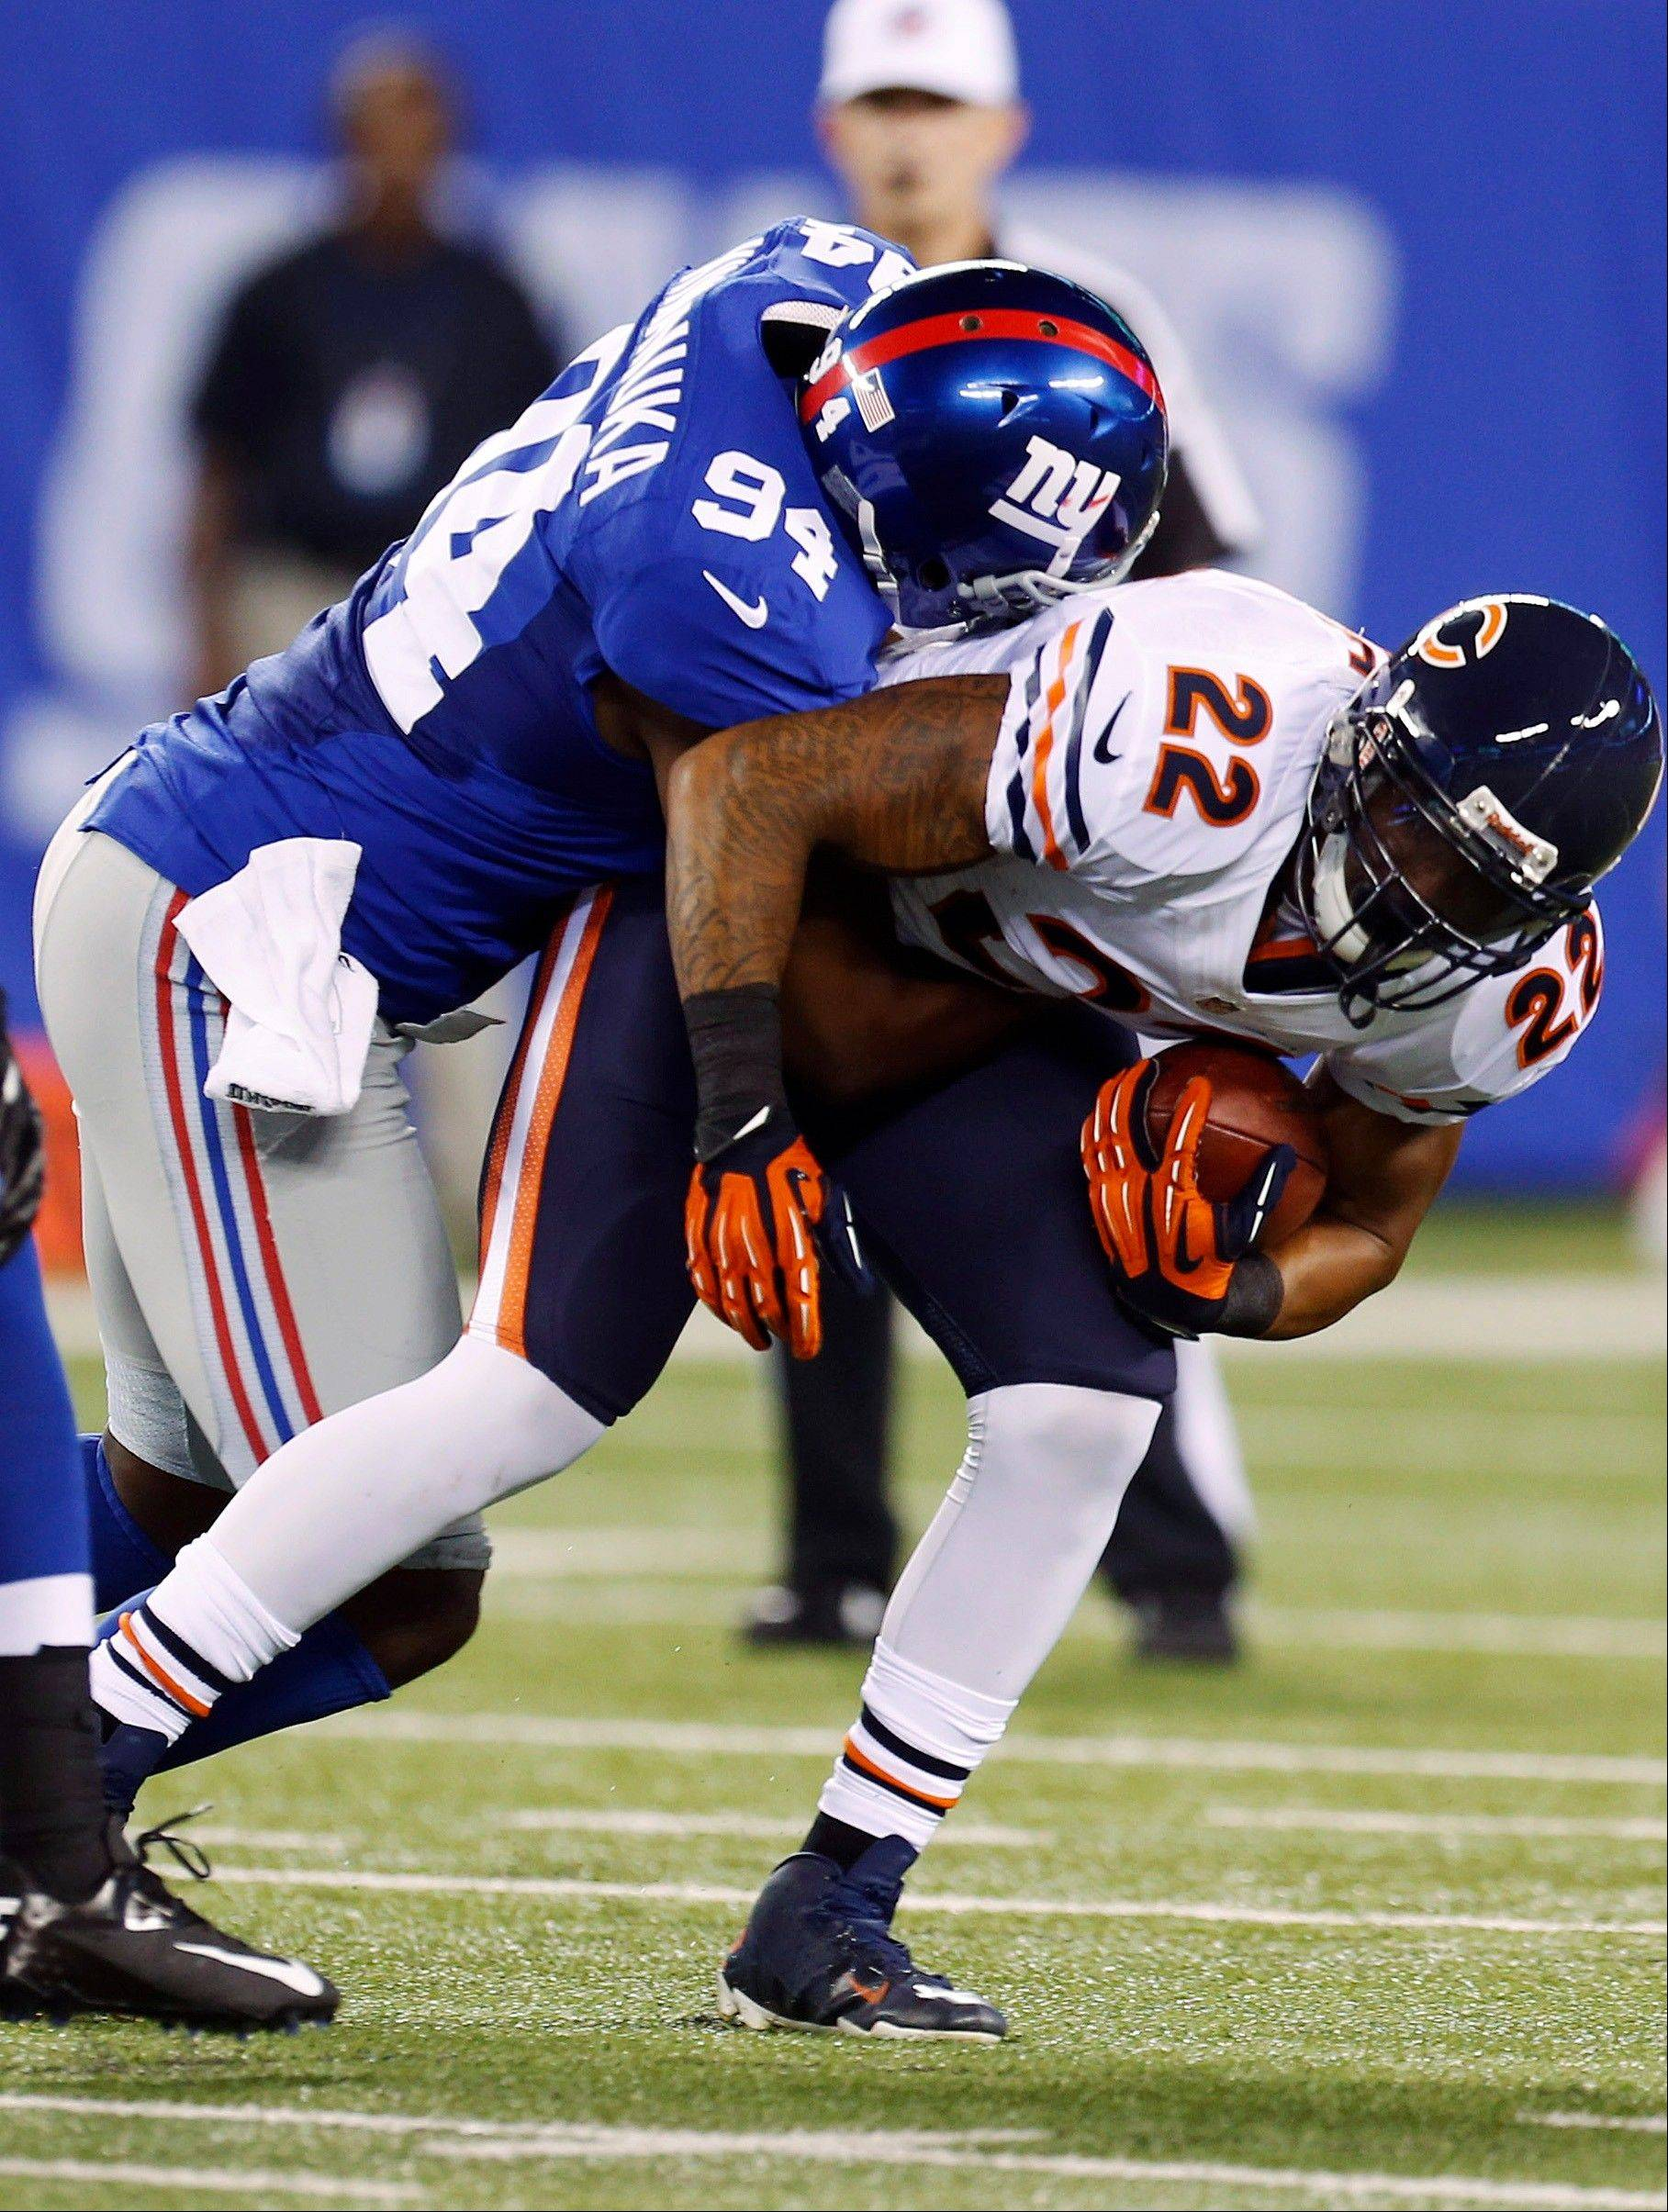 Matt Forte is tackled by New York Giants linebacker Mathias Kiwanuka (94) during the first half of an NFL preseason football game Friday, Aug. 24, 2012, in East Rutherford, N.J. (AP Photo/Julio Cortez)